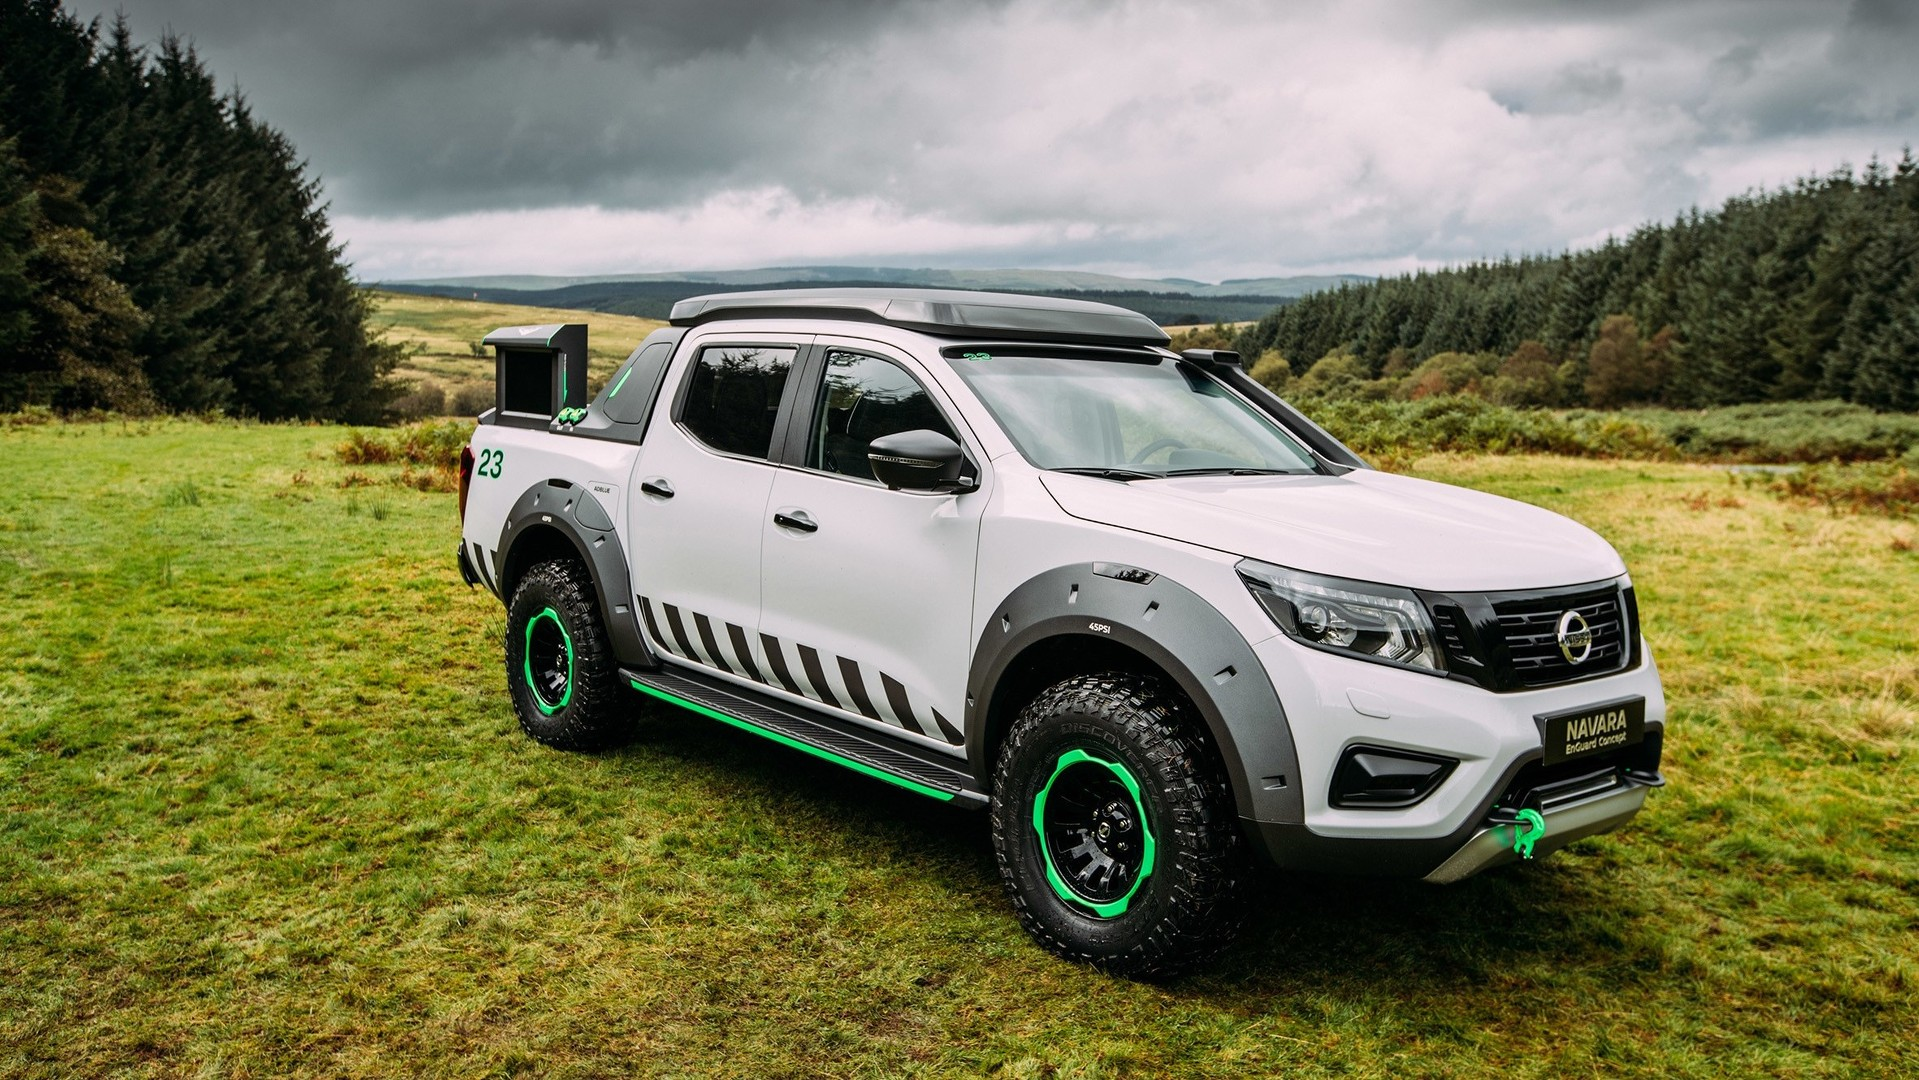 Nissan Pathfinder 2019 >> Nissan Navara EnGuard emergency rescue concept has its own drone